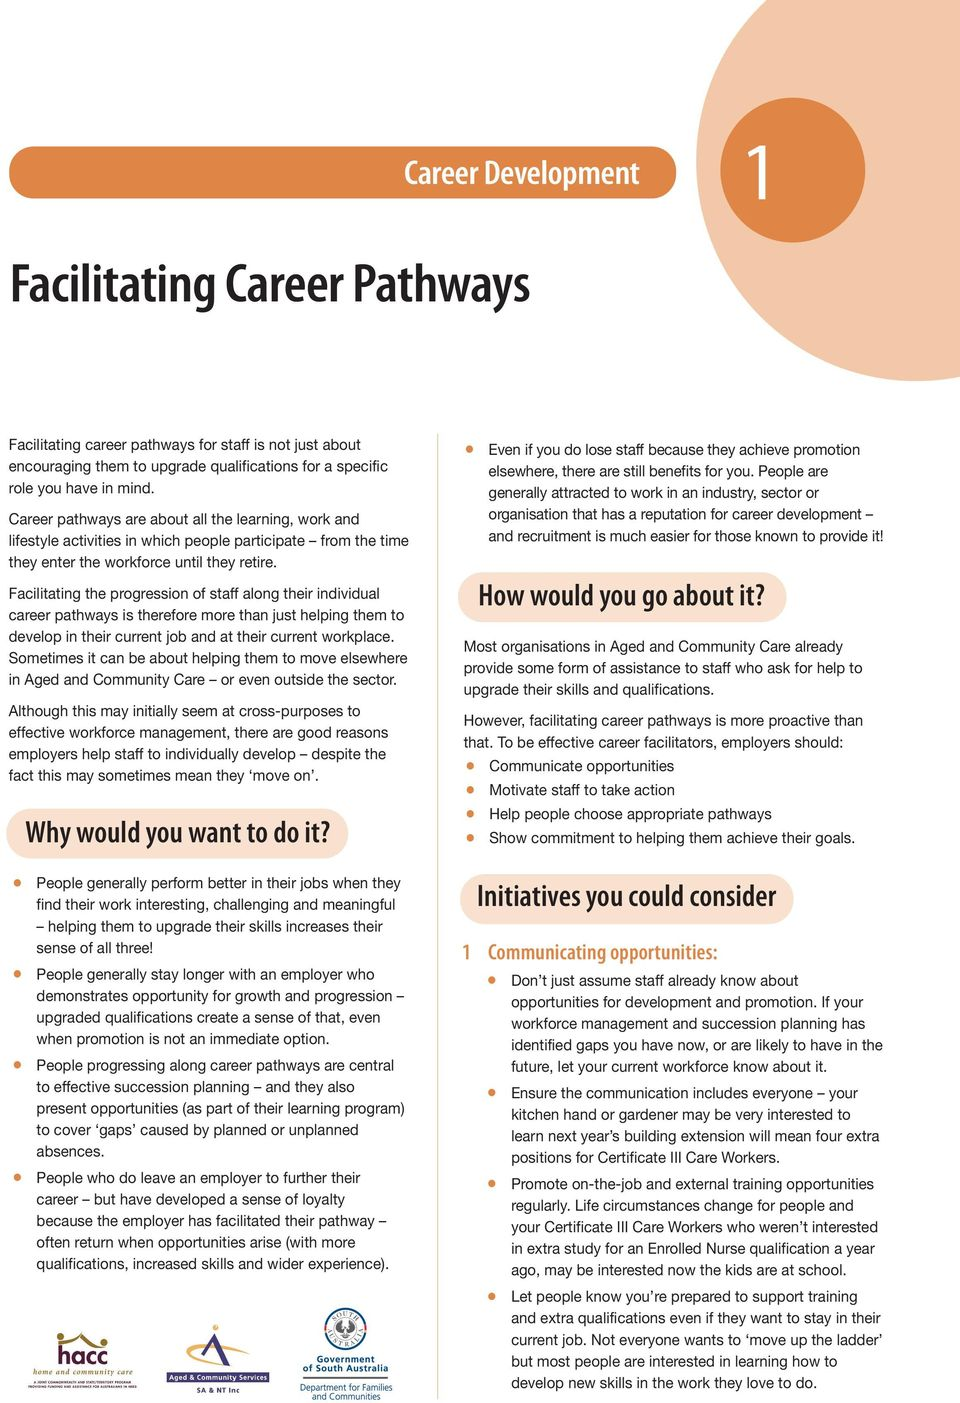 Facilitating the progression of staff along their individual career pathways is therefore more than just helping them to develop in their current job and at their current workplace.